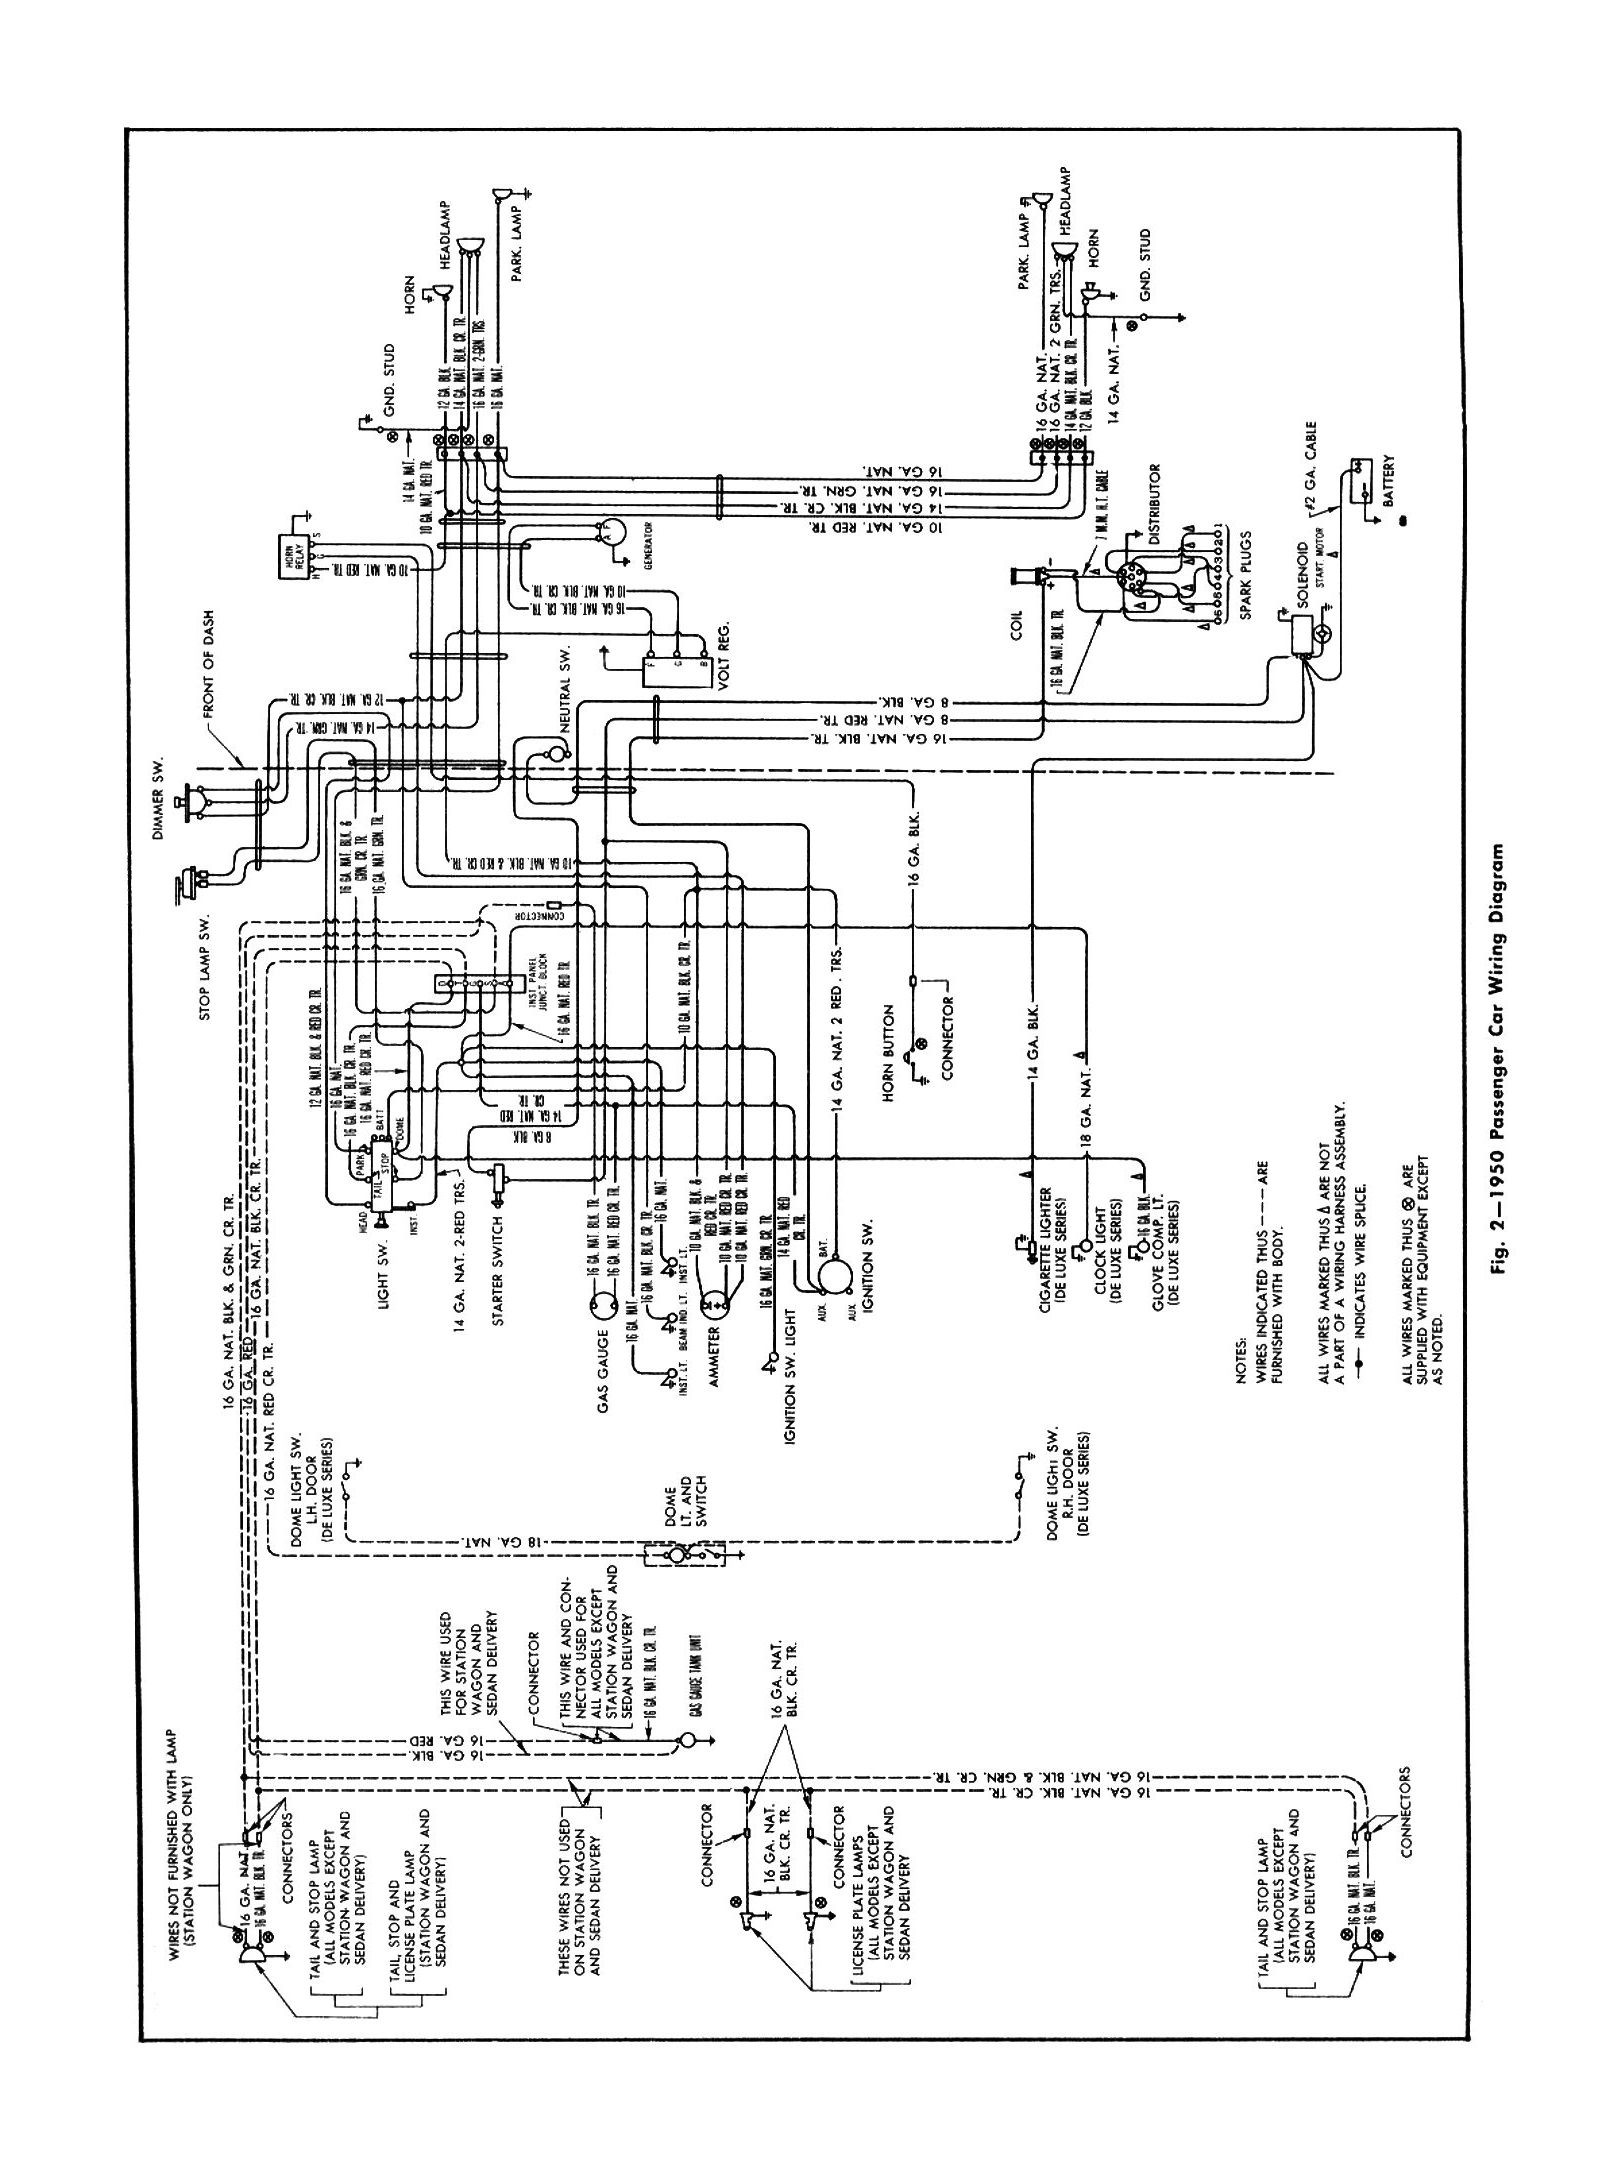 1951 Mercury Turn Signal Wiring Diagram Trusted 1950 Merc Ford Vin Location Get Free Image About